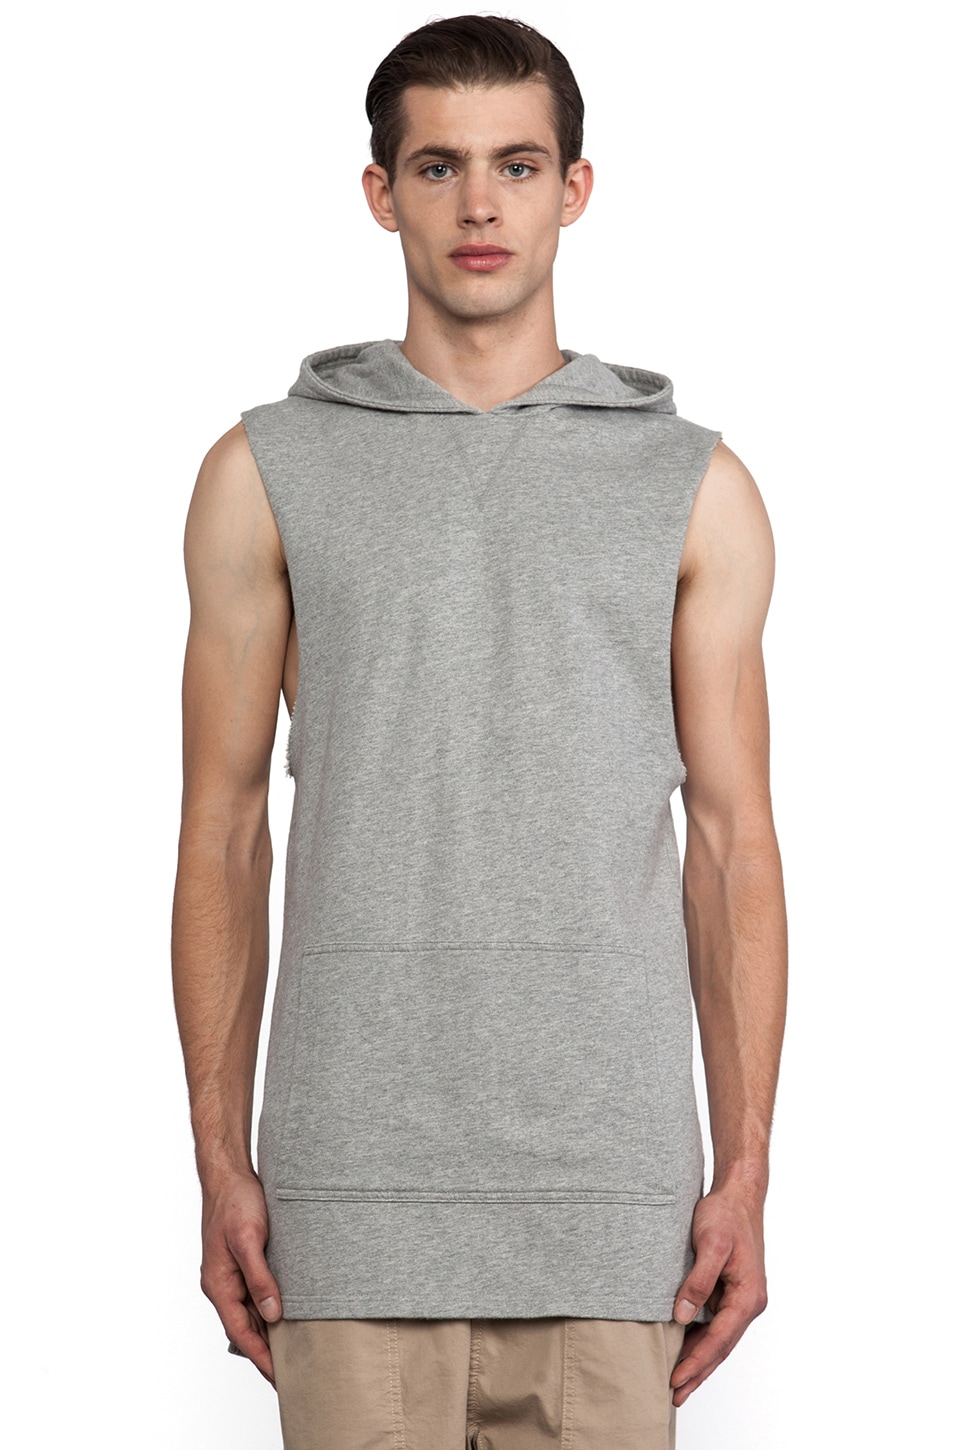 Zanerobe Uppercut Sweatshirt in Light Grey Marle